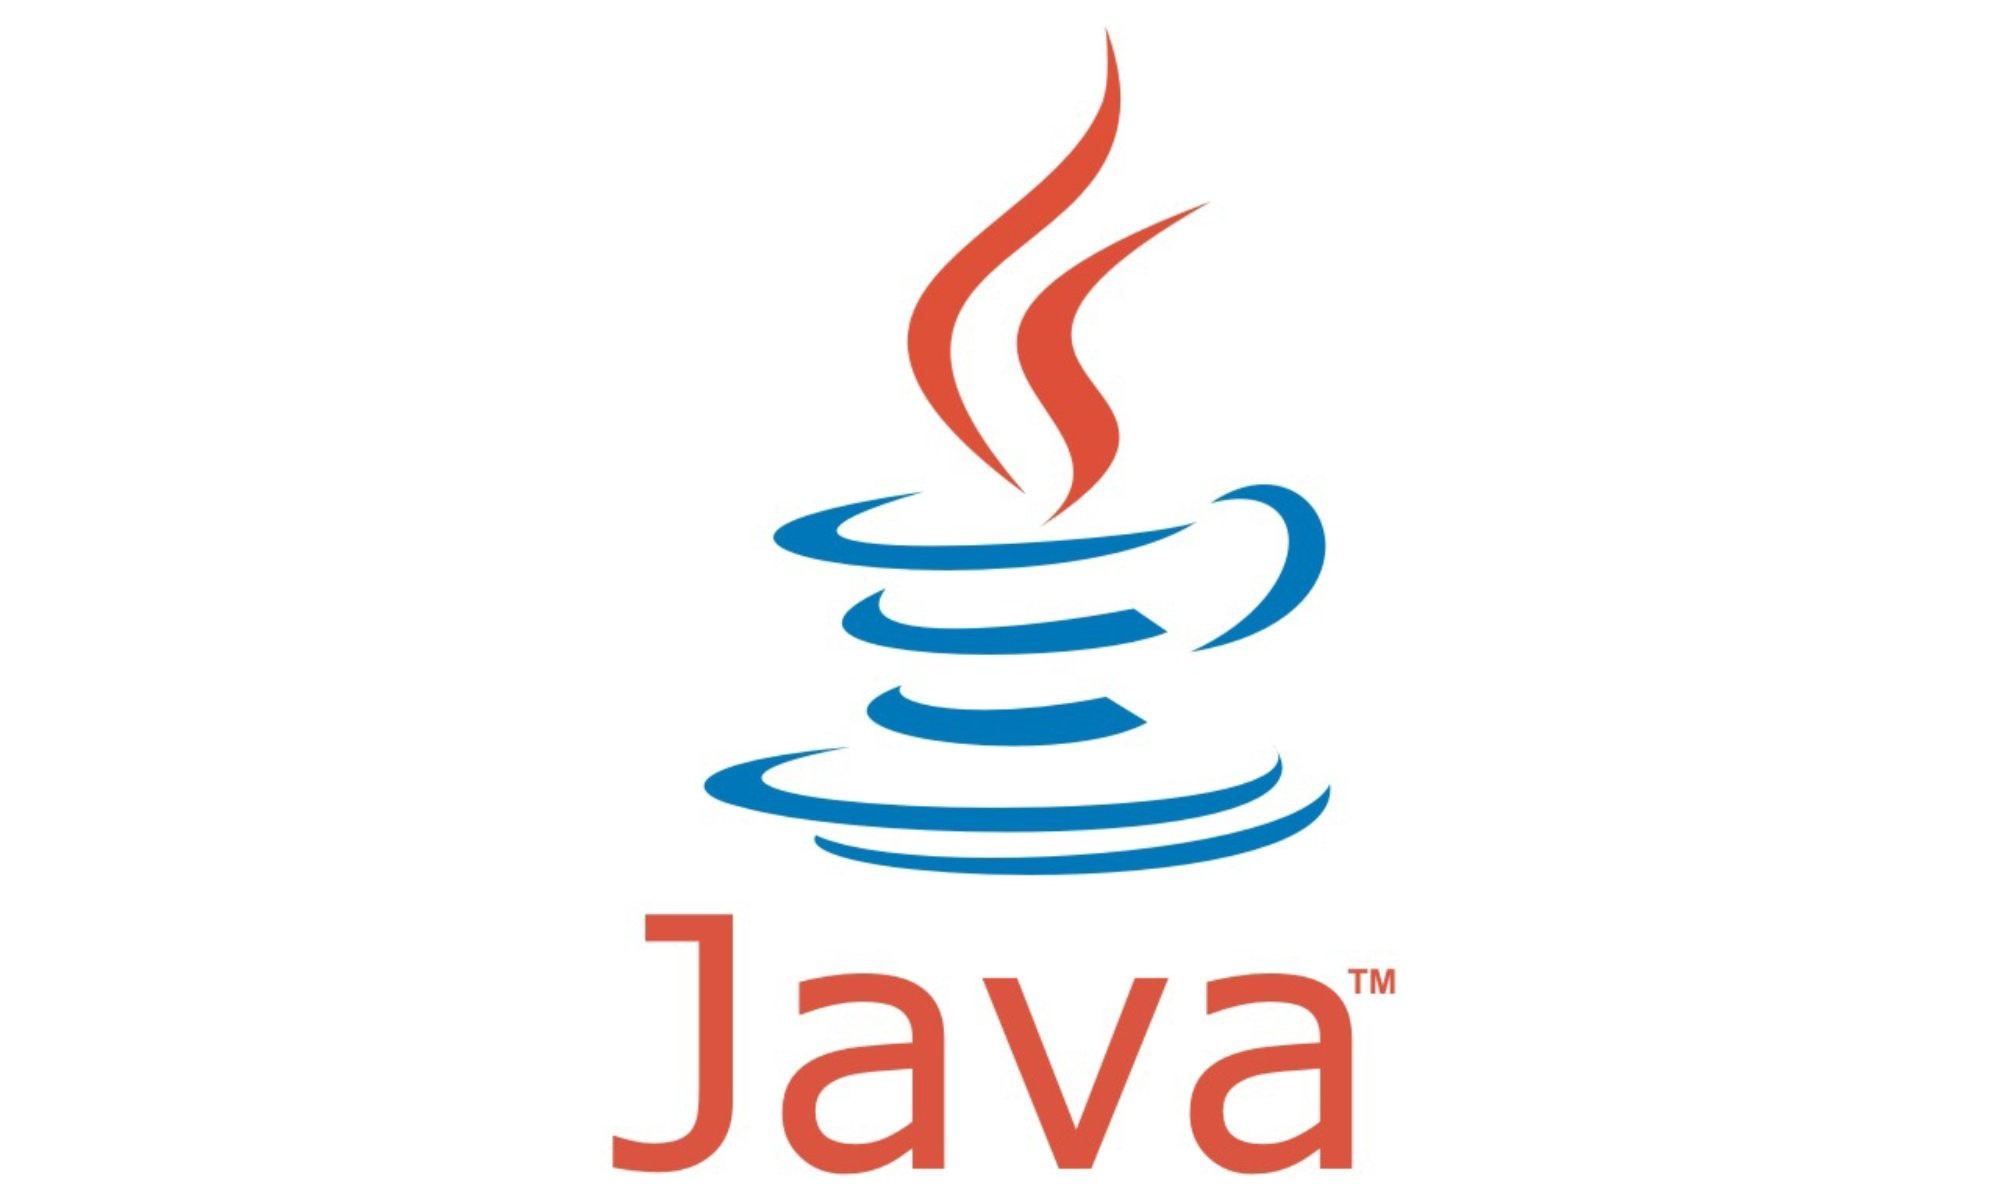 All New JAVA 13: Why Is It Giving A Tough Battle To Other Languages